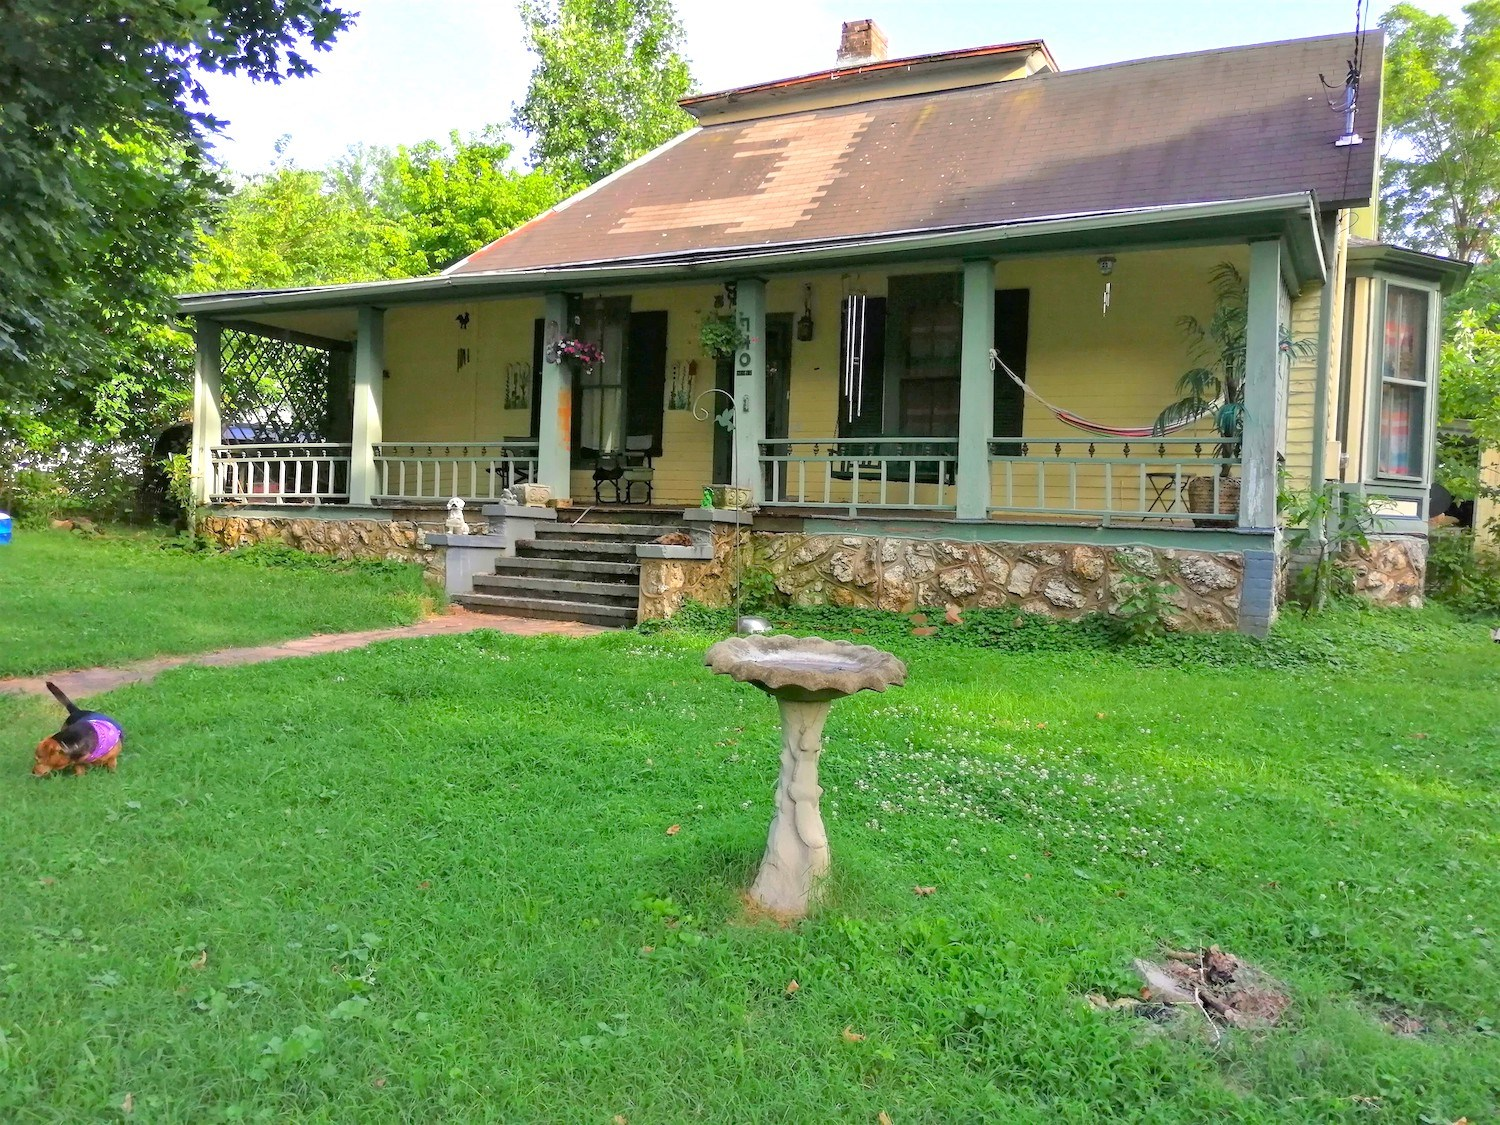 Historical Home for Sale in the Ozarks